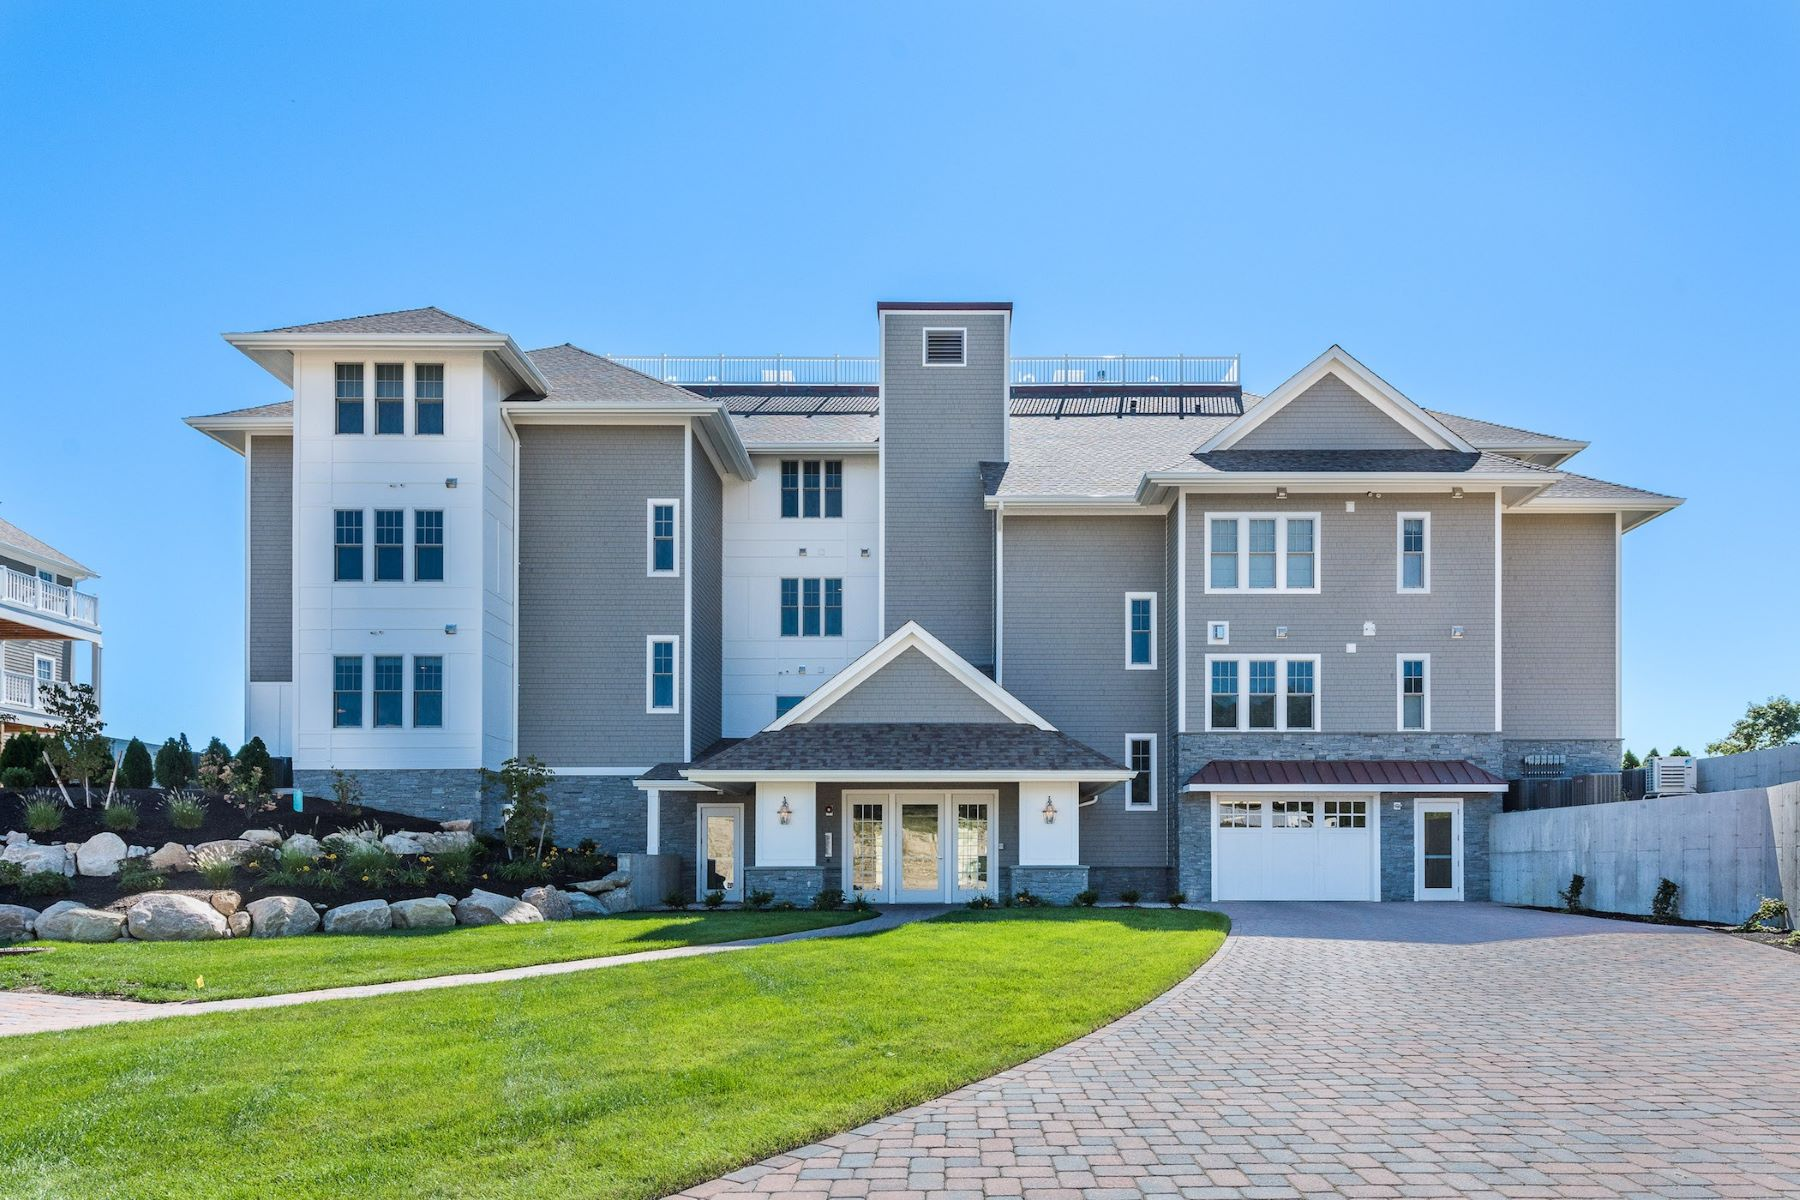 Condominium for Sale at 7 Compass Wy D201, #D201, Westerly, RI 7 Compass Wy D201 D201 Westerly, Rhode Island 02891 United States